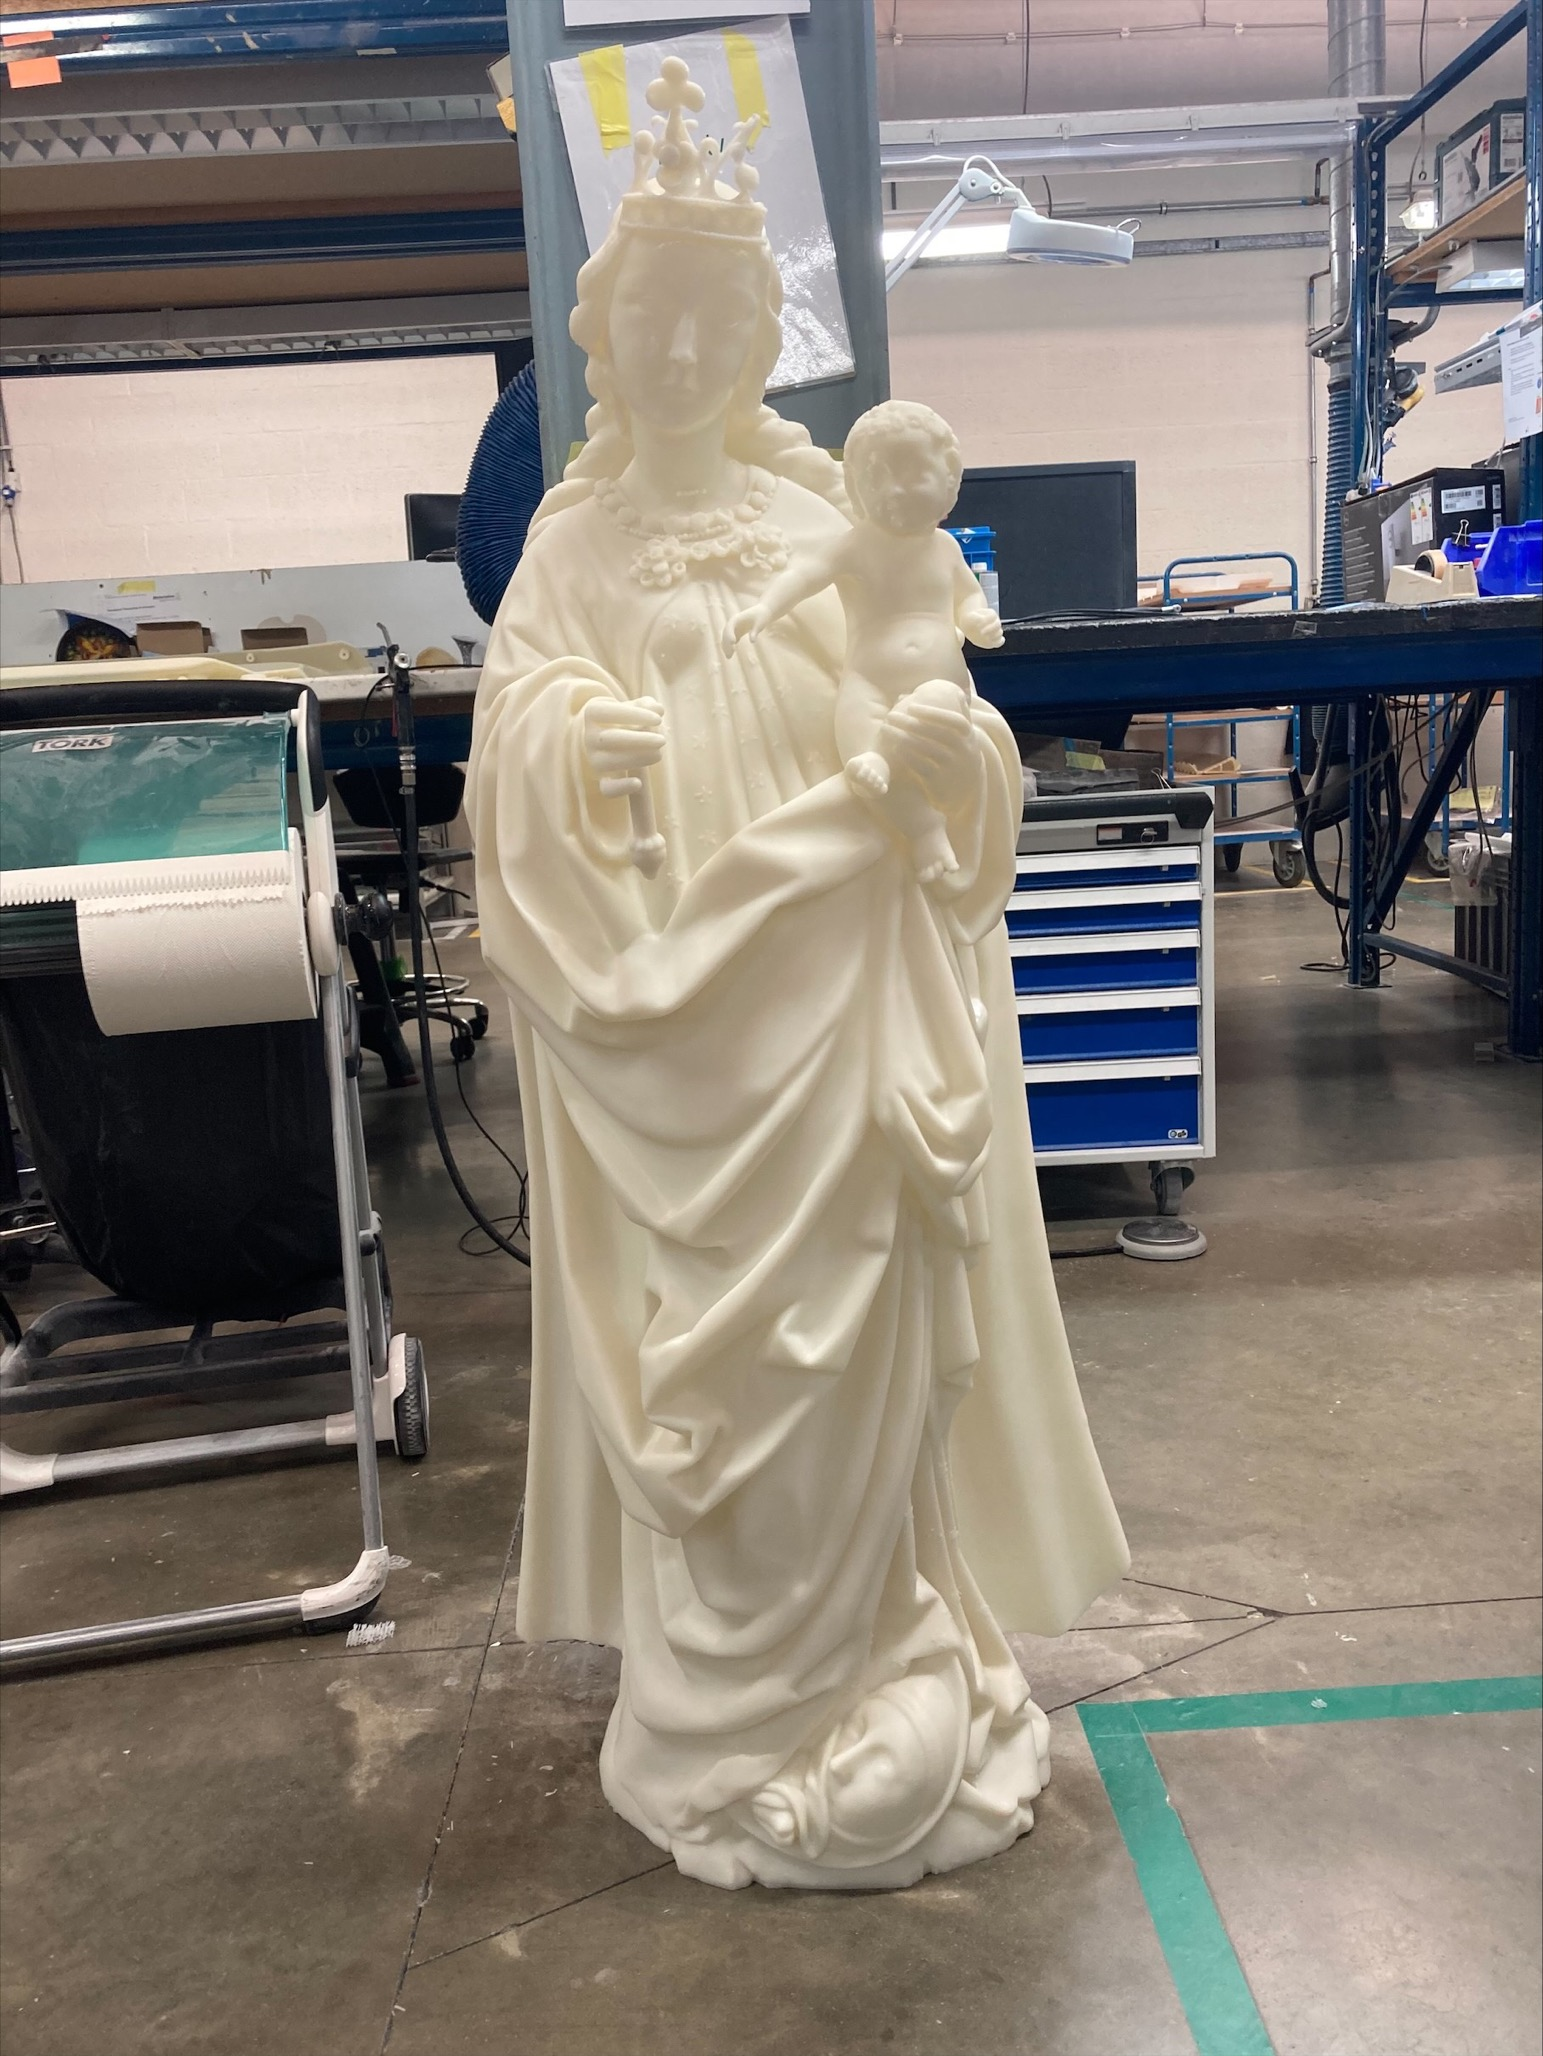 White 3D printed representation of the Madonna of the Turning Eyes